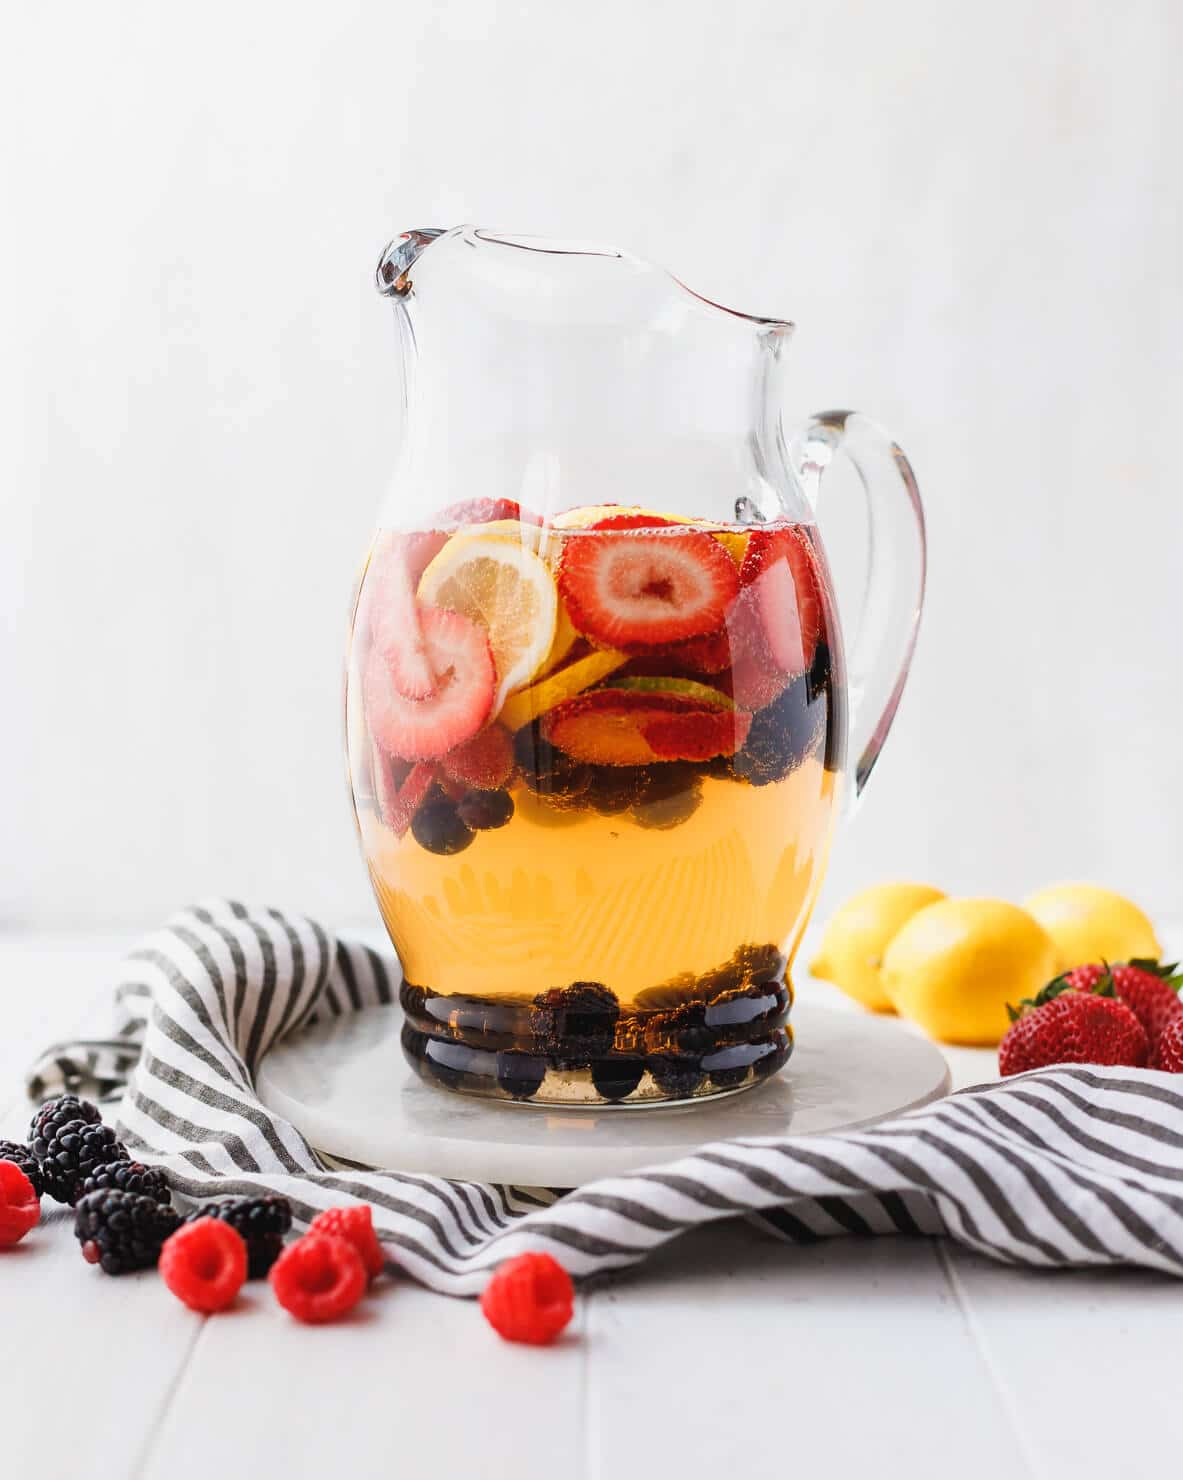 White Wine Berry Sangria Recipe - very easy to make, refreshing drink, great for parties and hot summer days.